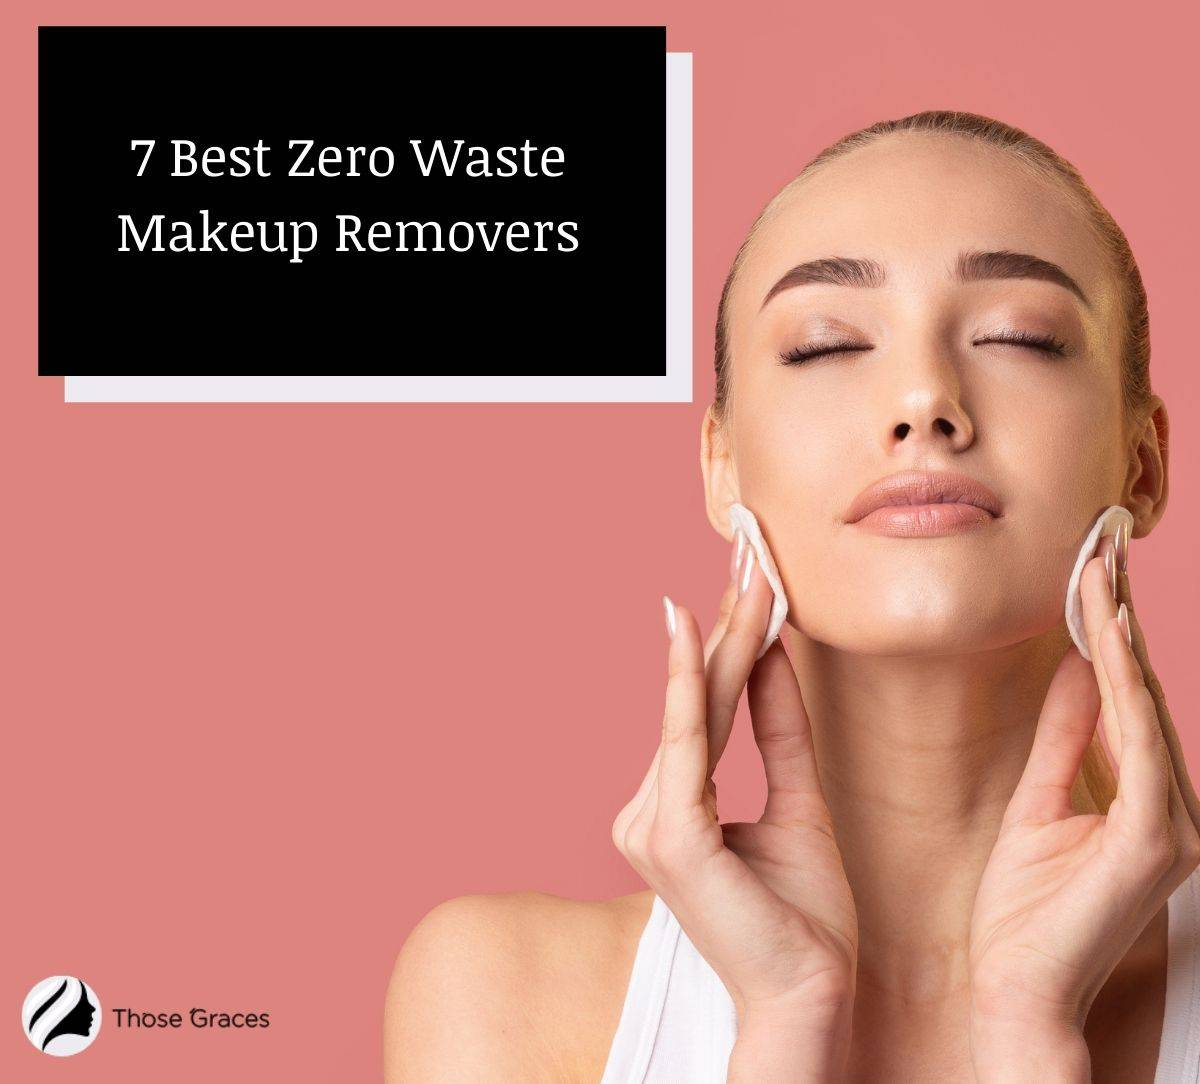 a lady cleansing her face using a zero waste makeup remover